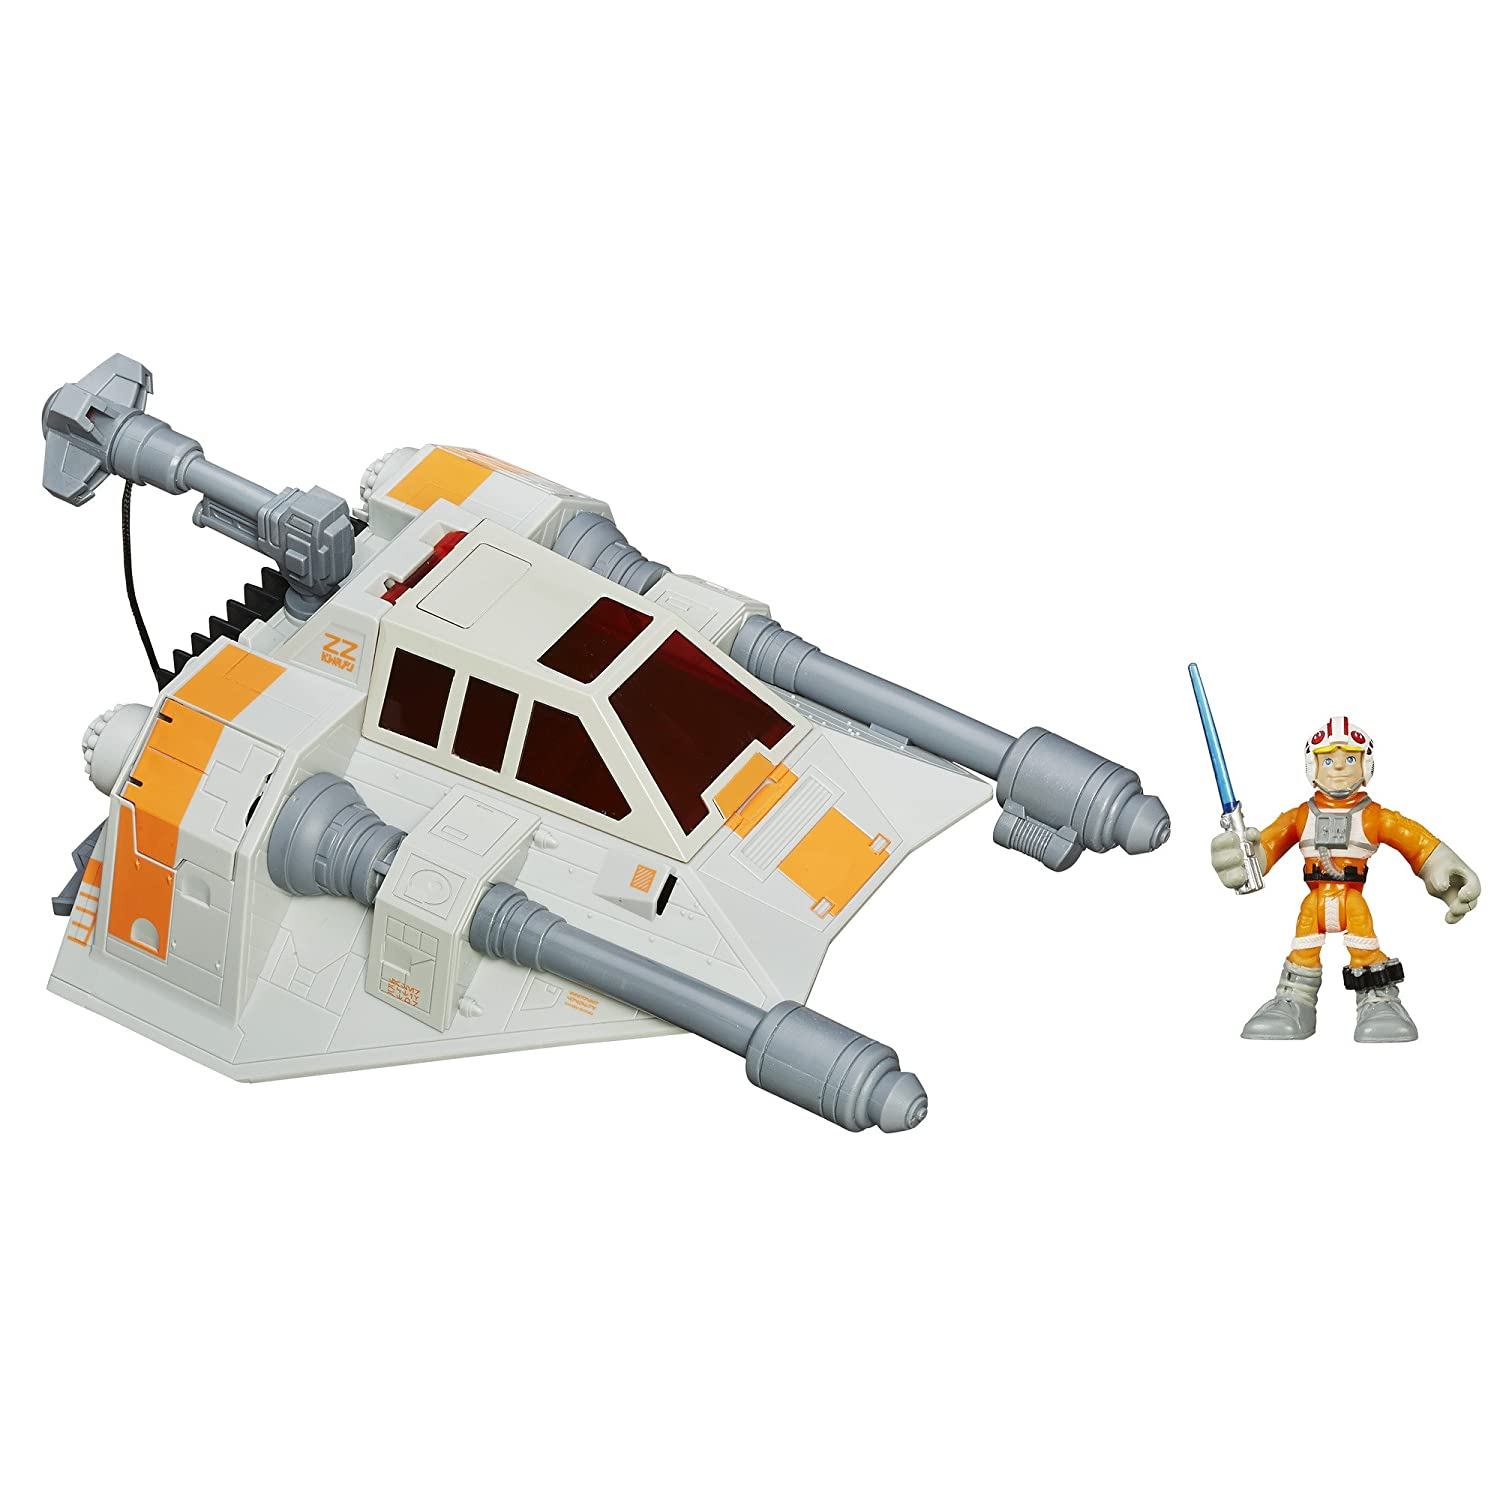 Playskool Heroes Star Wars Galactic Heroes Jedi Force Snowspeeder Vehicle with Luke Skywalker Figure B013CYG40A